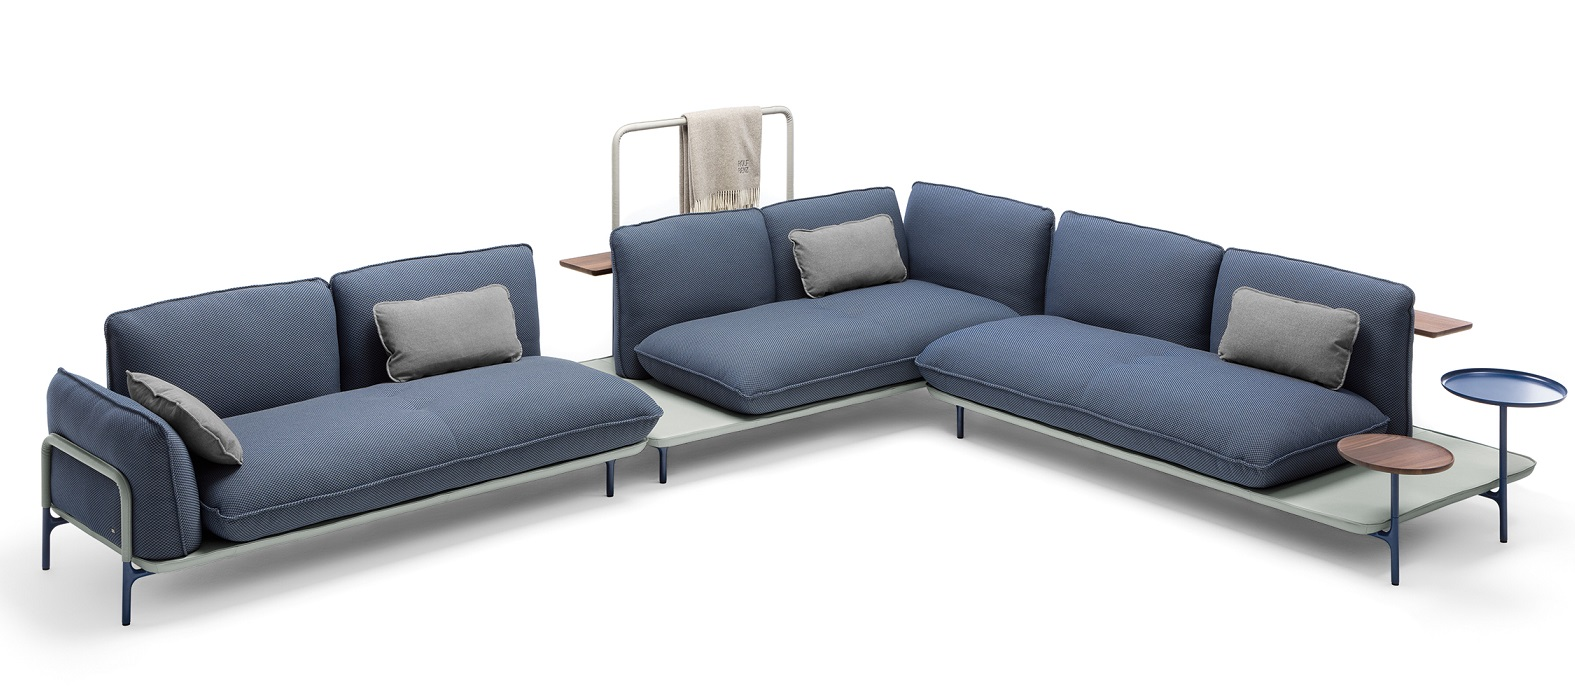 Lounge-Sofa Addit von Rolf Benz | Sofa-Trends